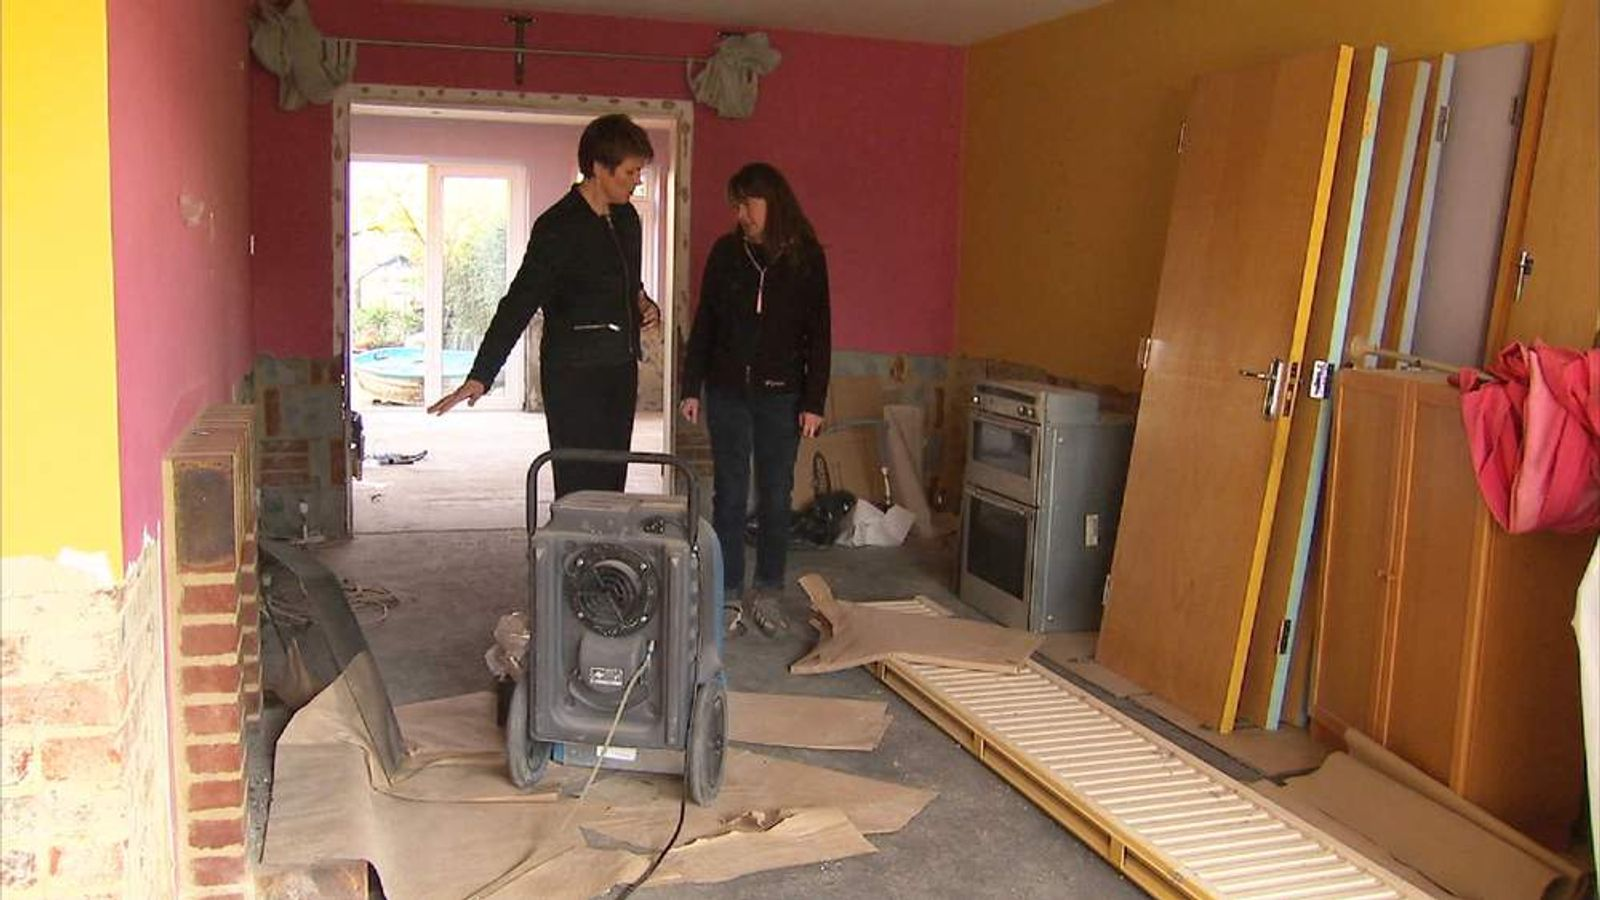 Jacquie Marr's semi in Leatherhead, Surrey, was flooded seven months ago